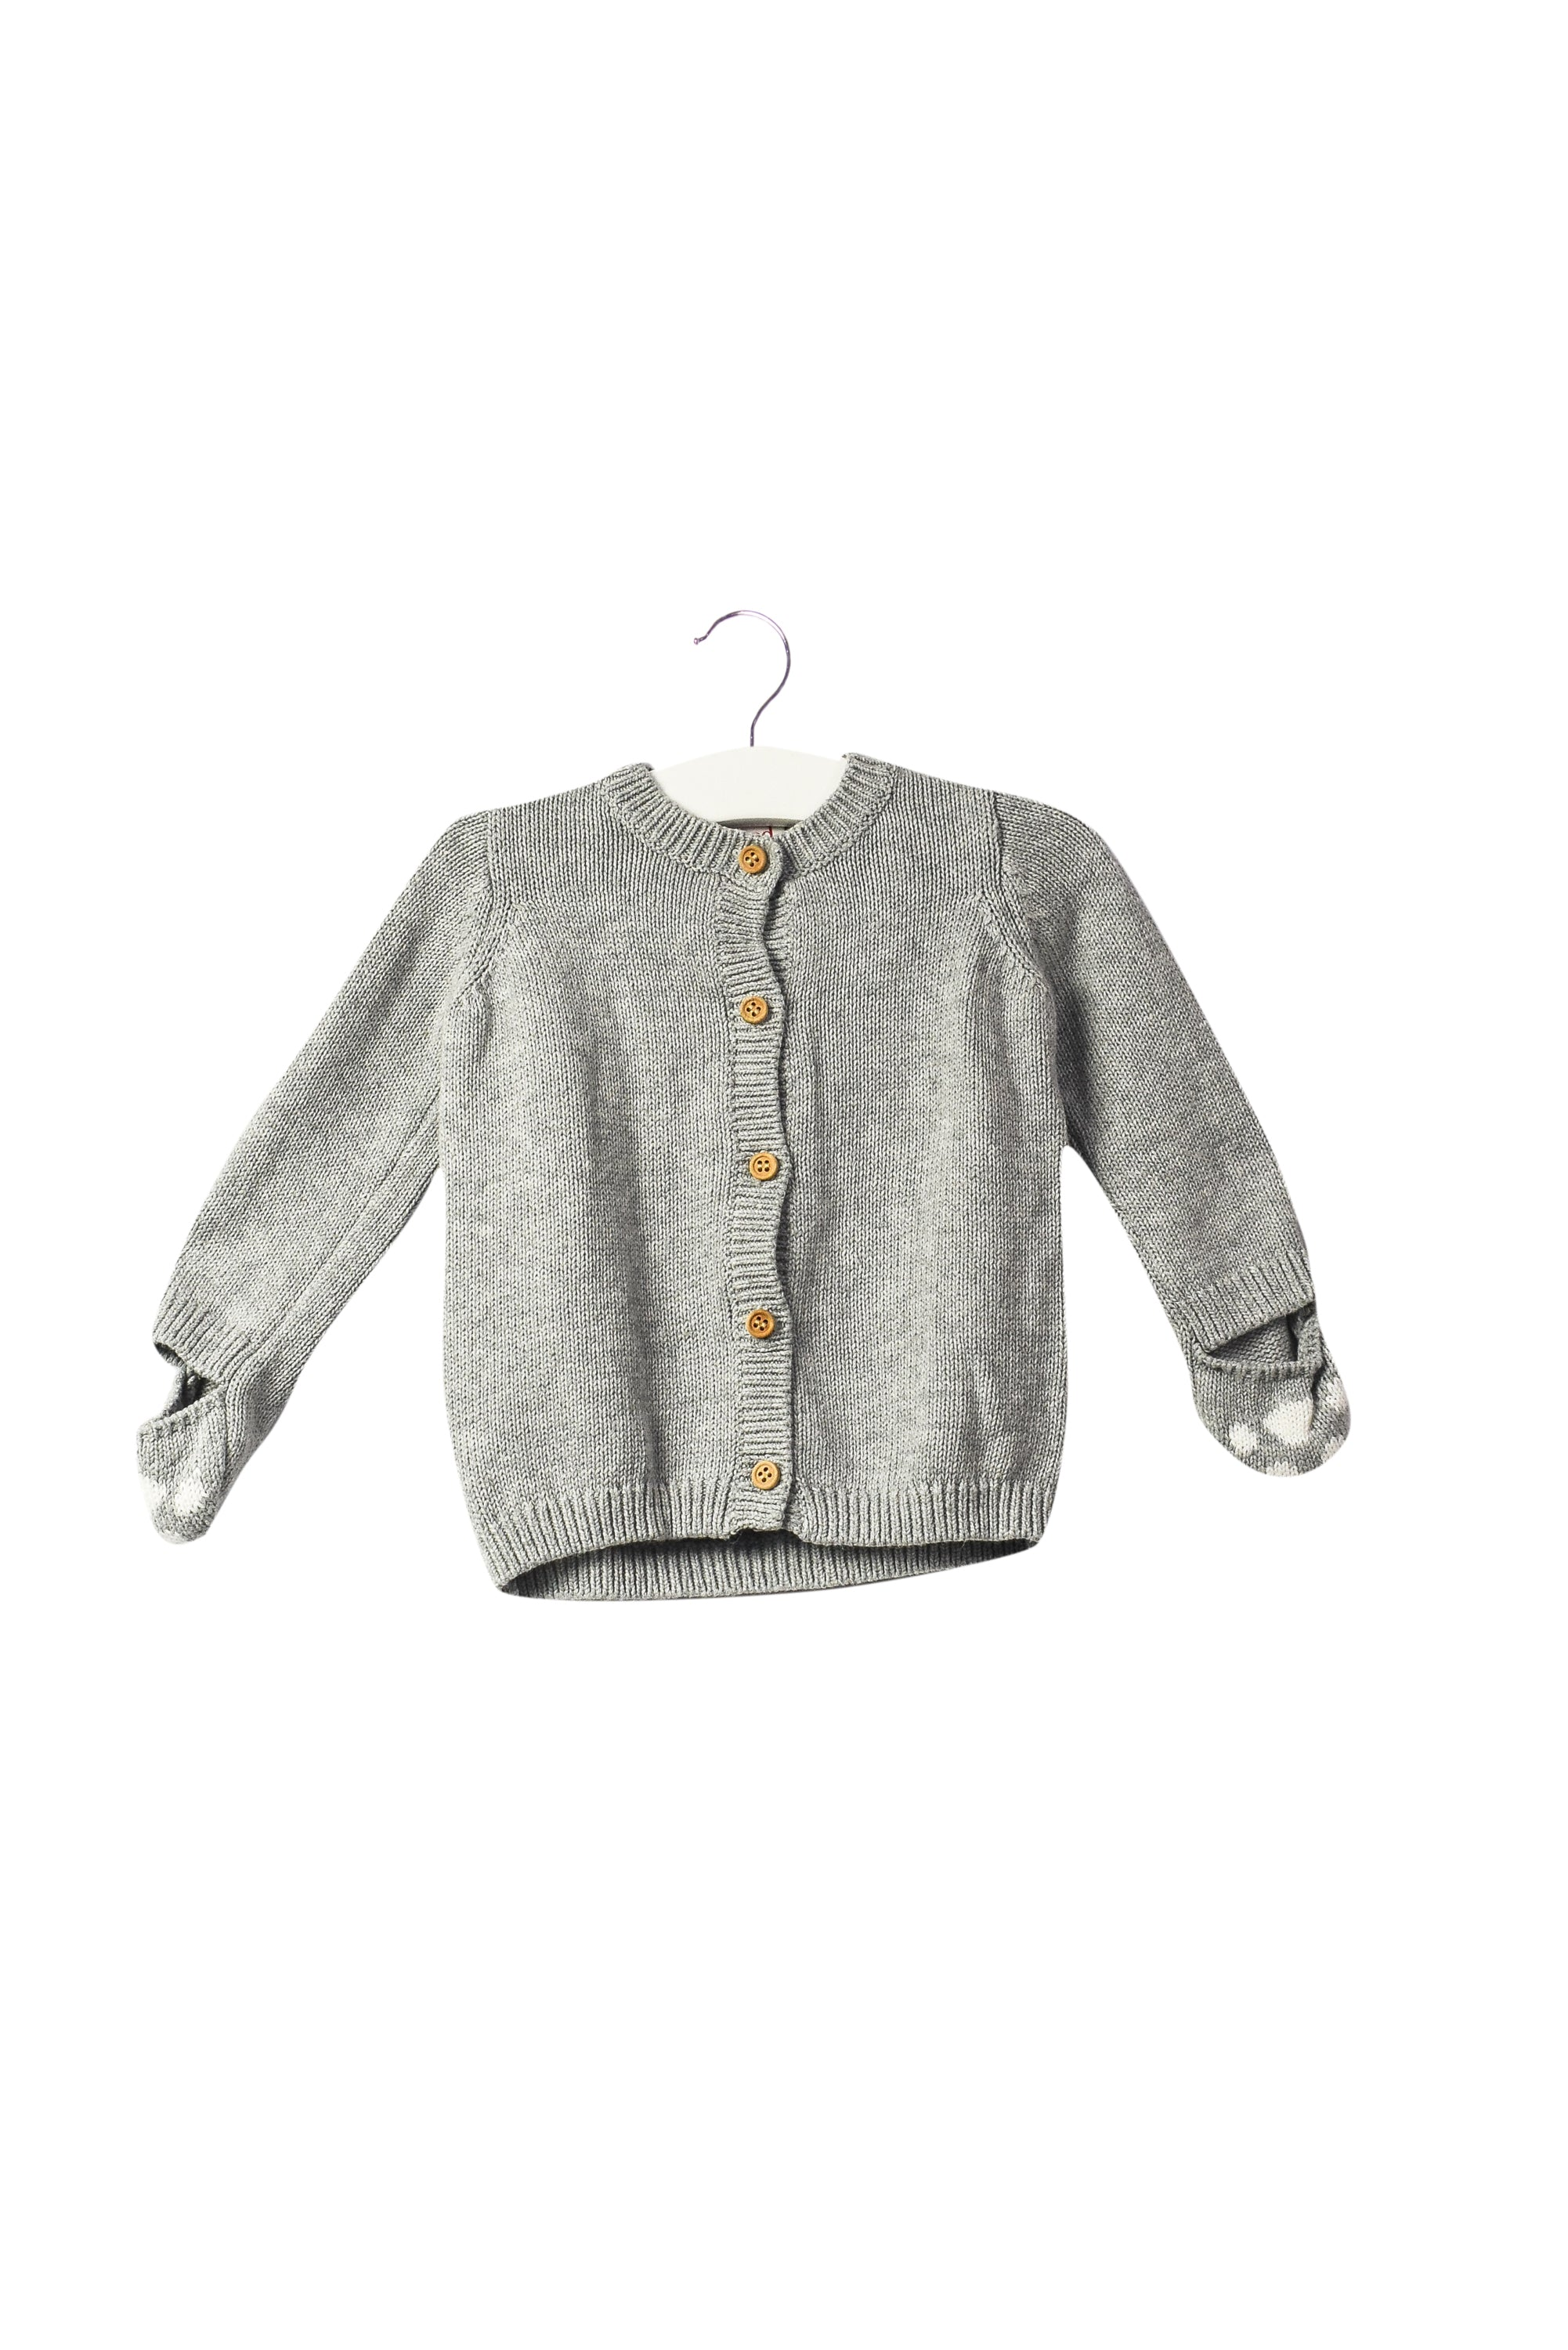 10043783 Seed Baby~Cardigan 0-3M at Retykle